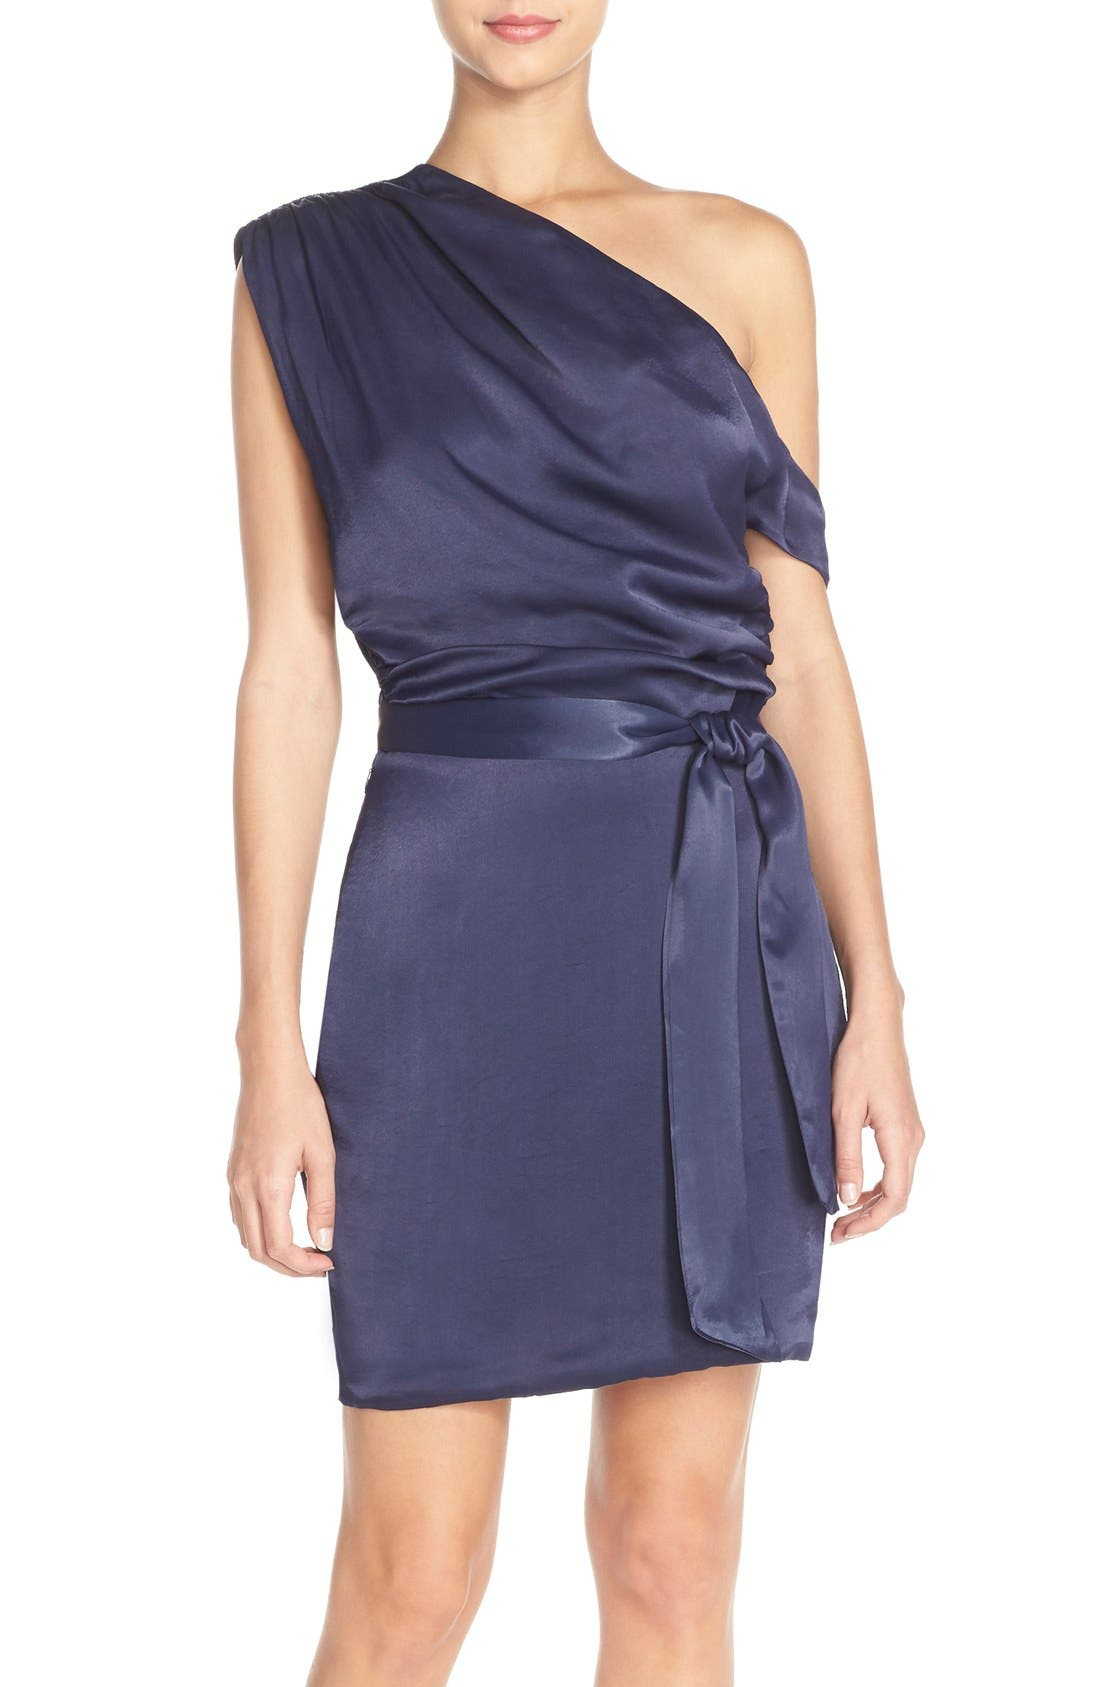 Alternate Image 1 Selected - Misha Collection 'Trista' One Shoulder Satin Sheath Dress